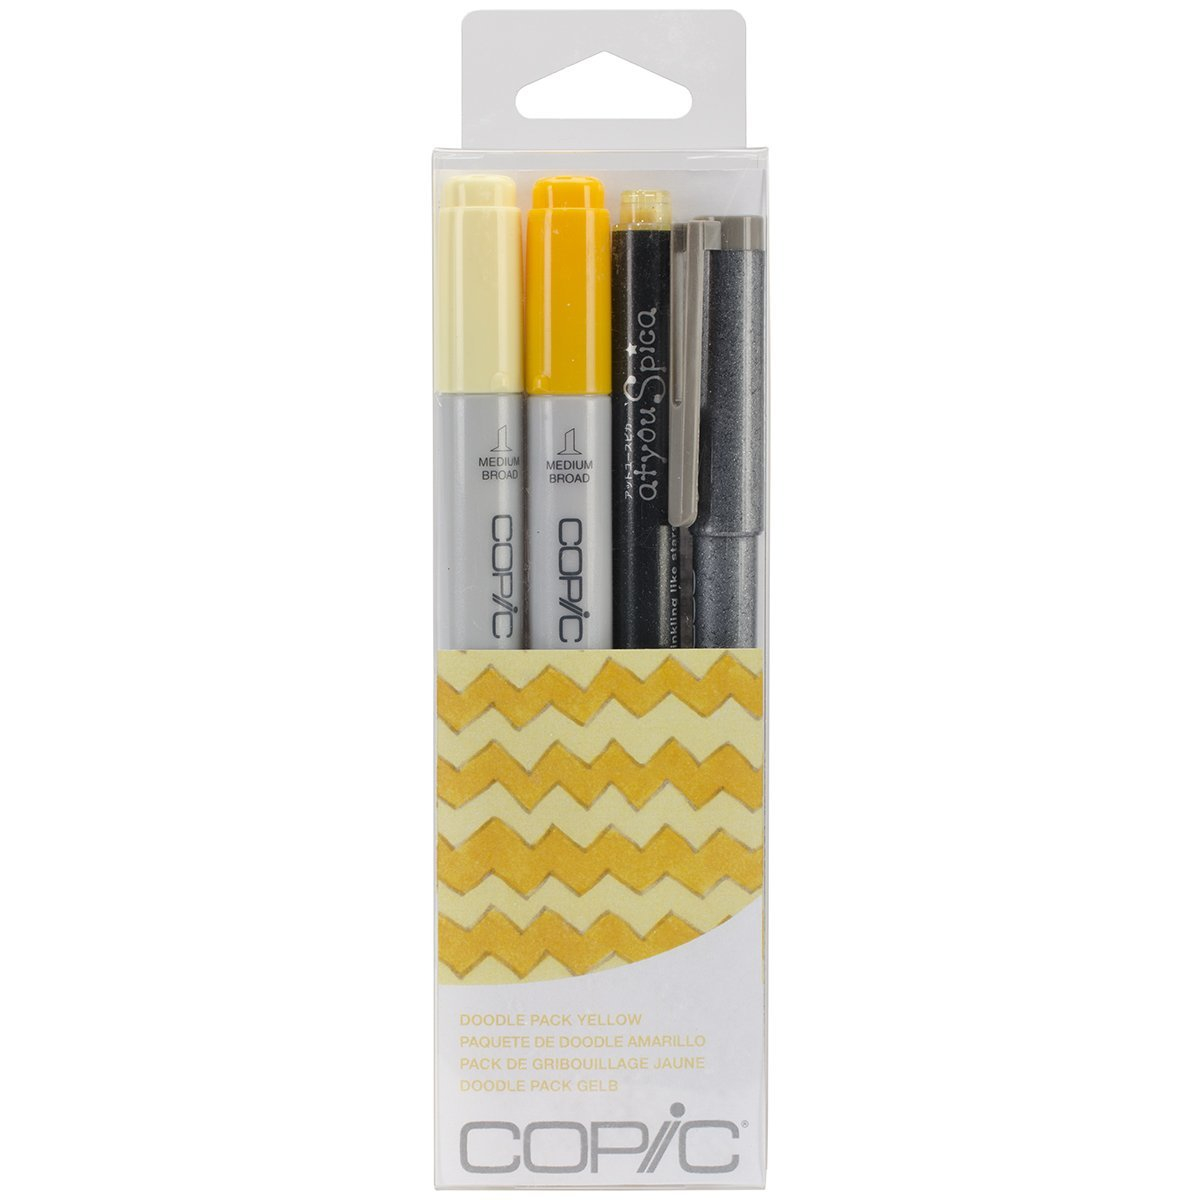 Copic Doodle Pack Yellow